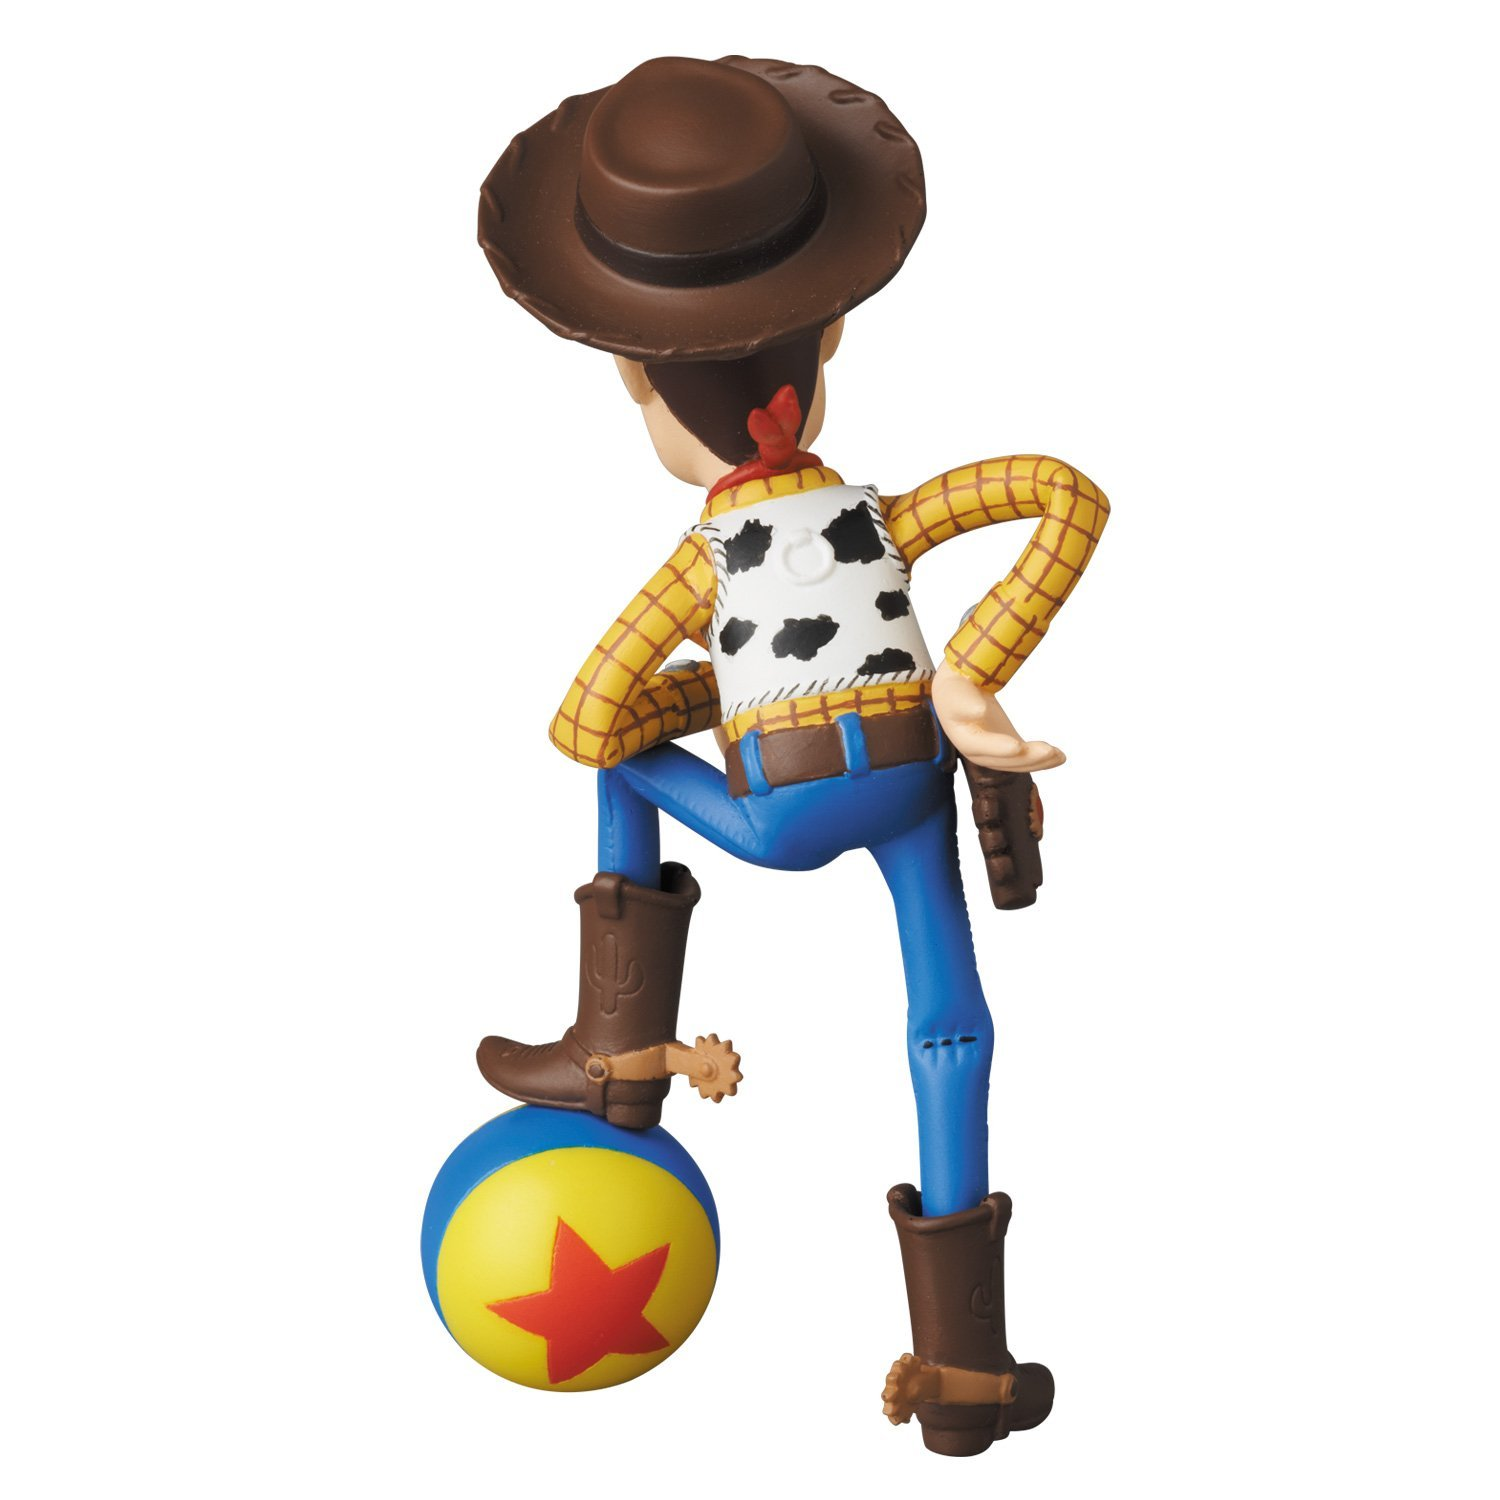 Udf disney series 4 woody ver 2 0 made non scale pvc painted